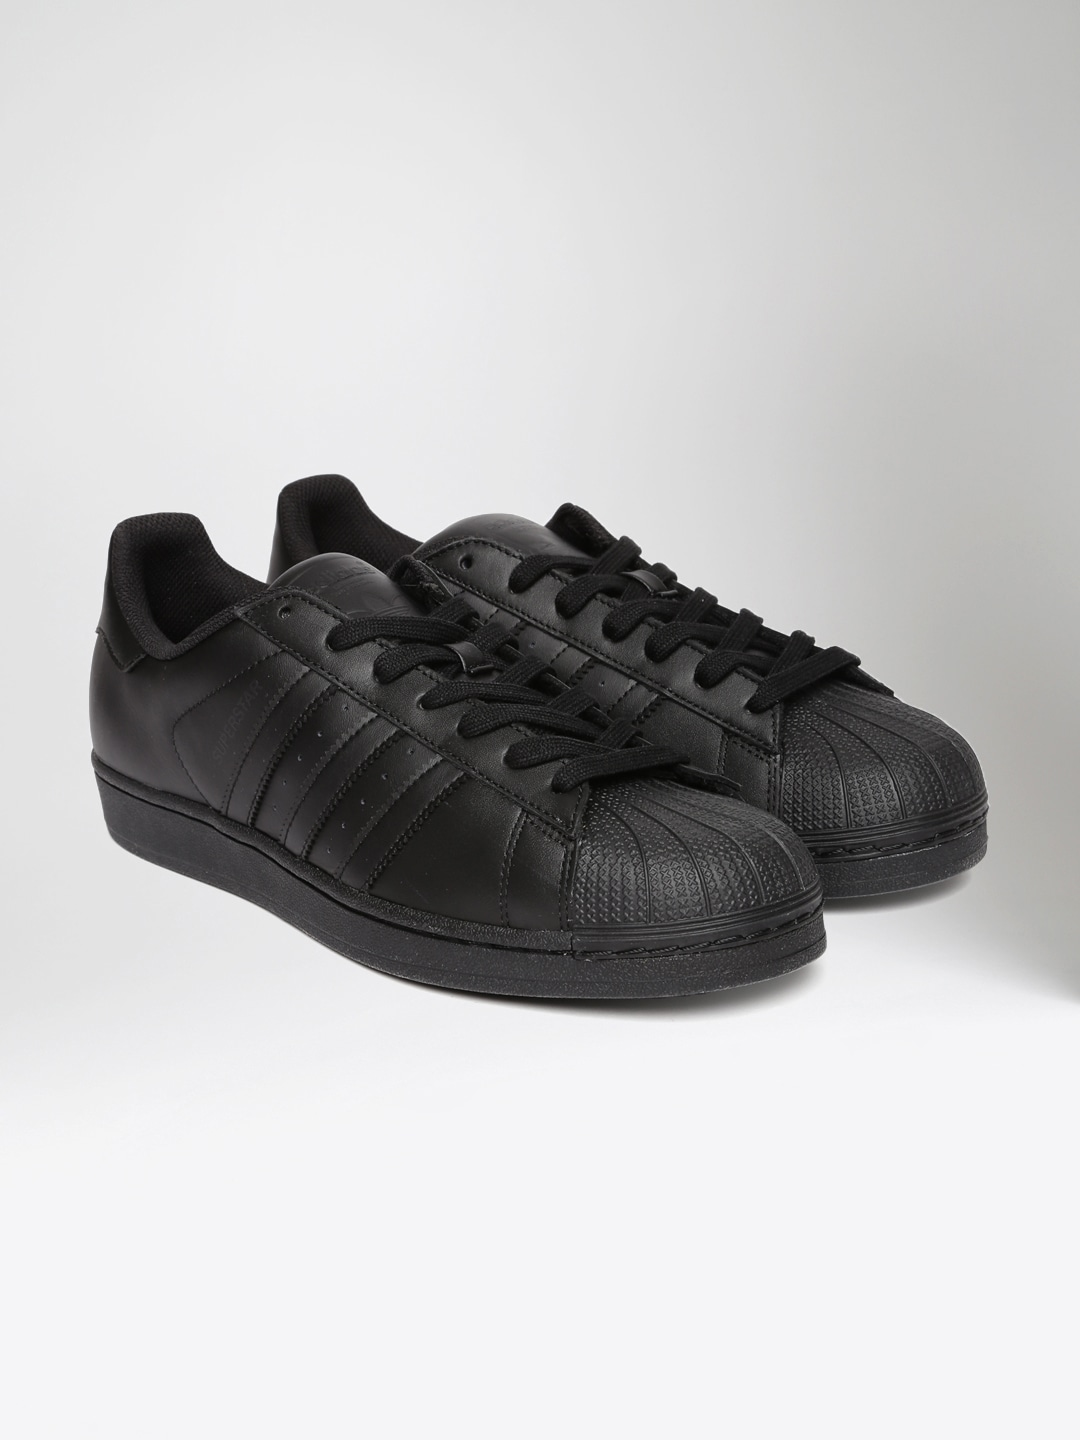 adidas shoes for girls superstar black. adidas shoes for girls superstar black u